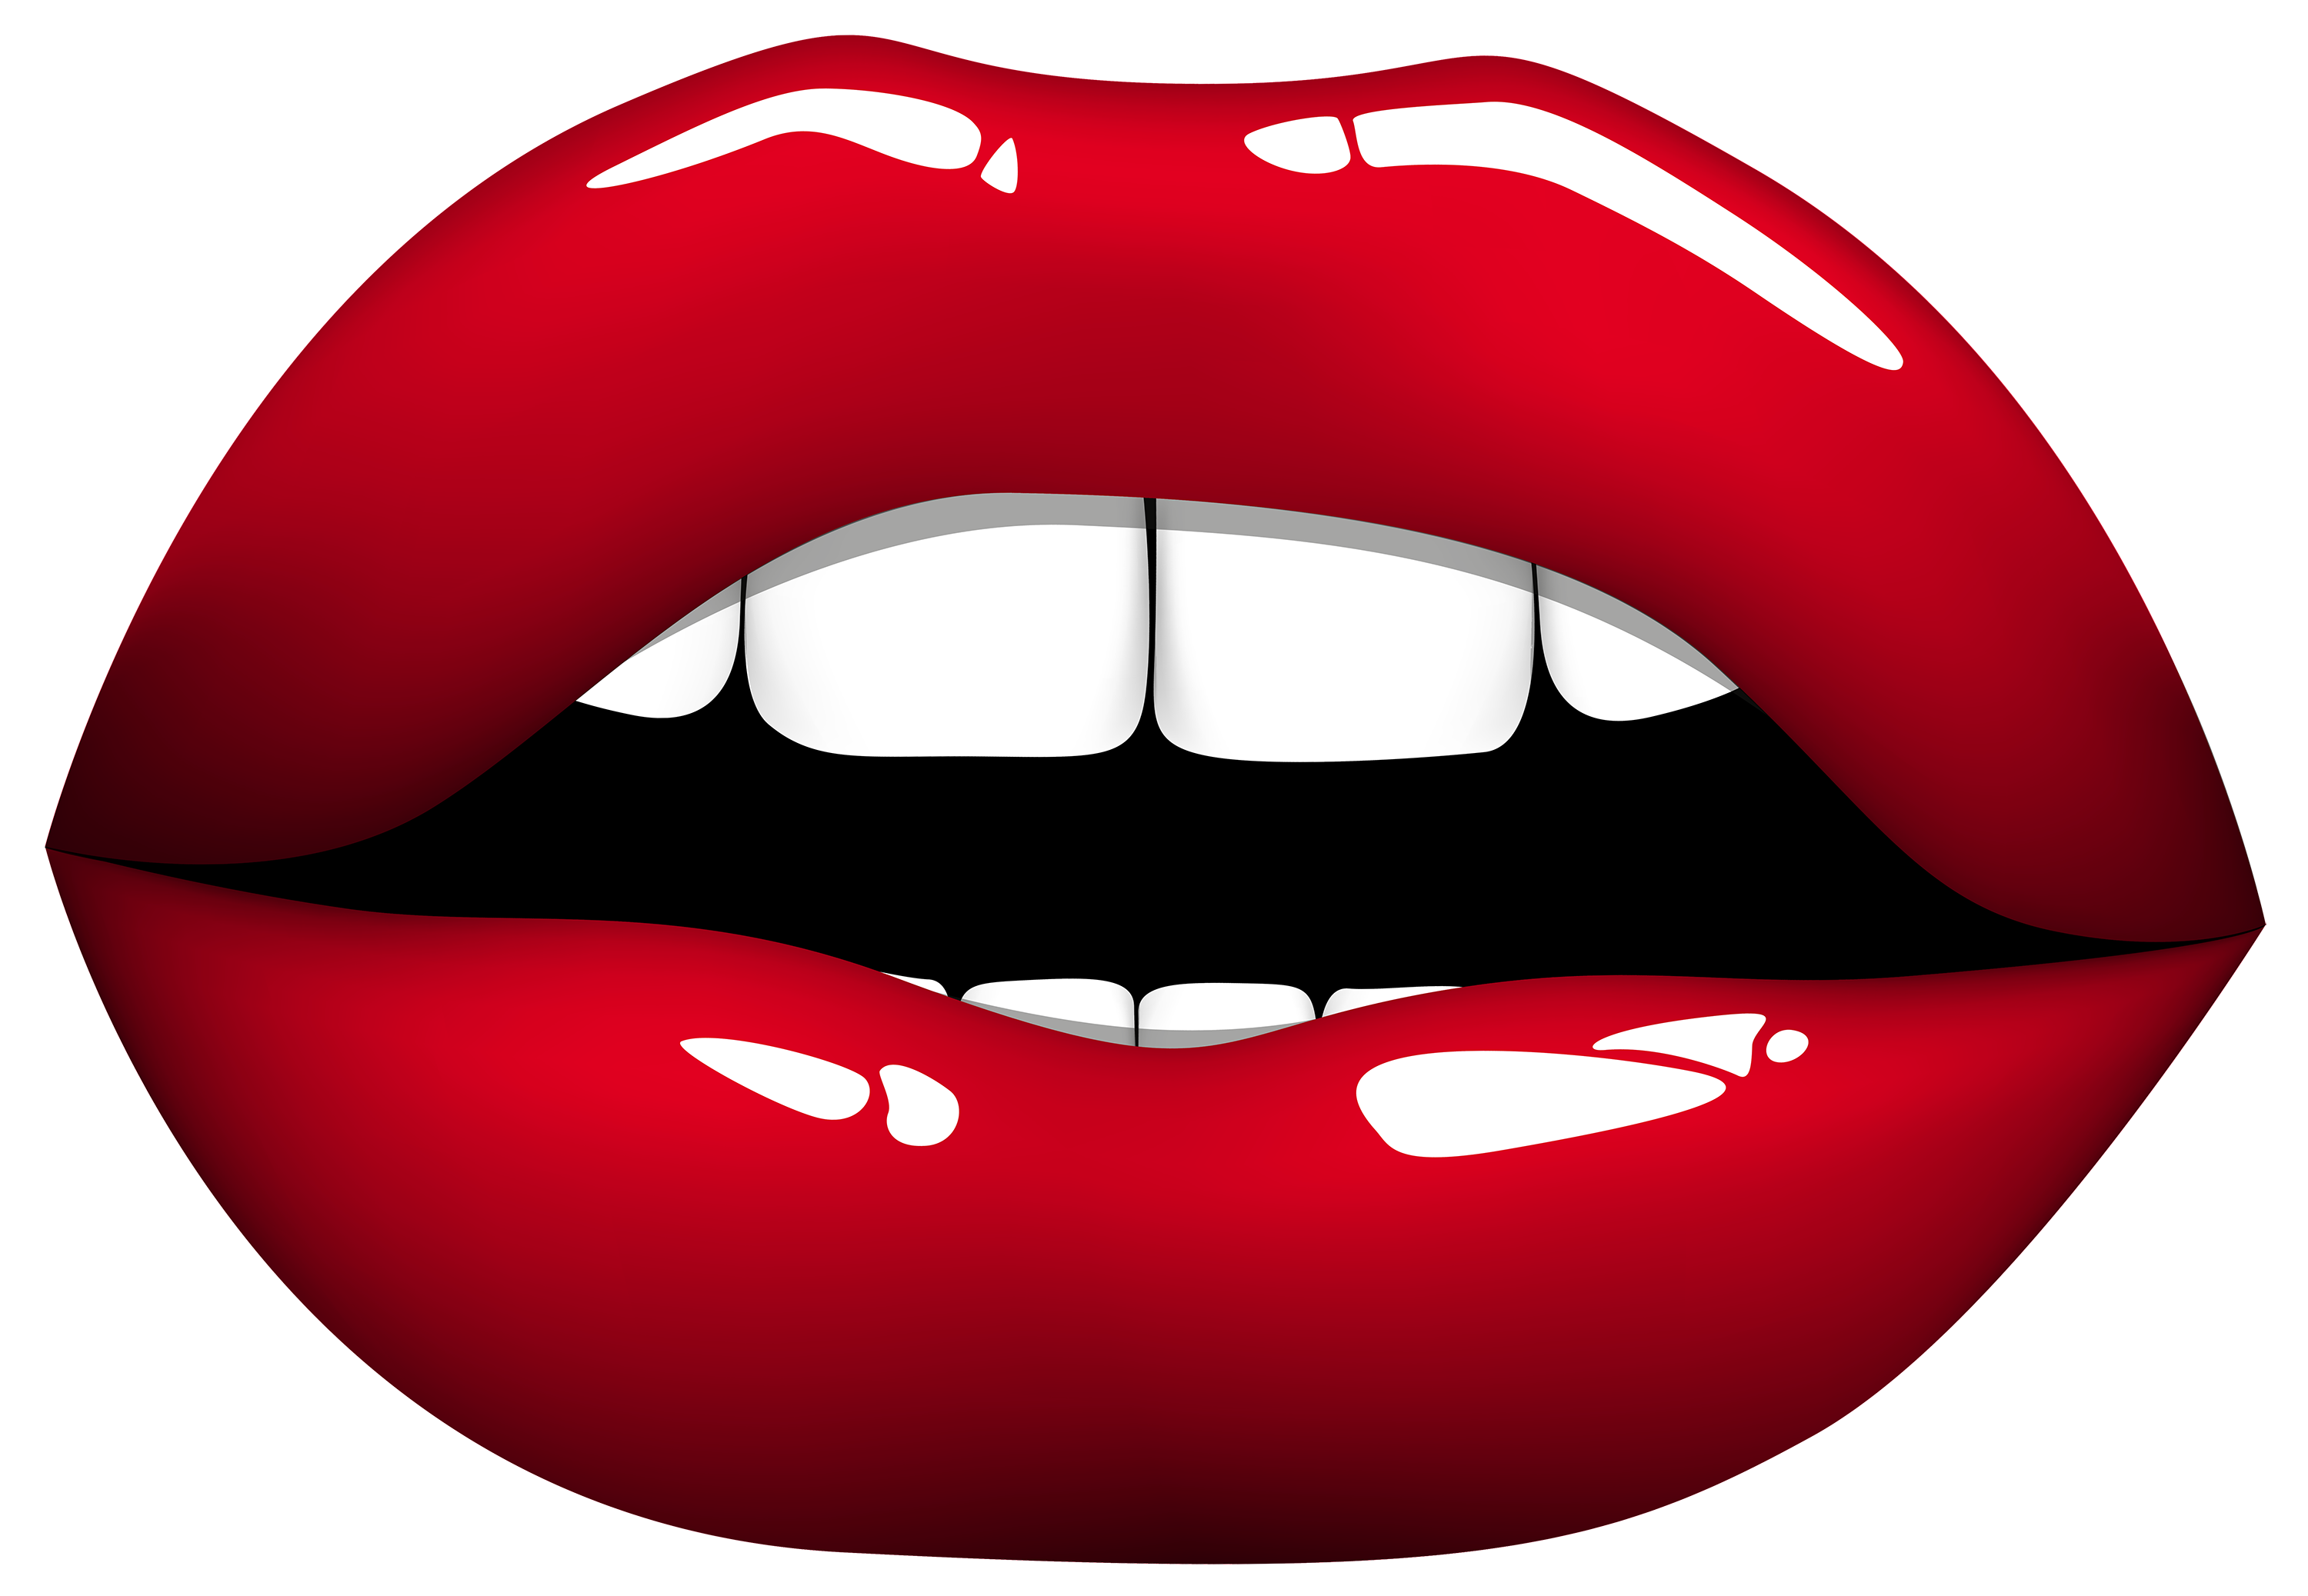 Red lips png best. Eyes clipart lip